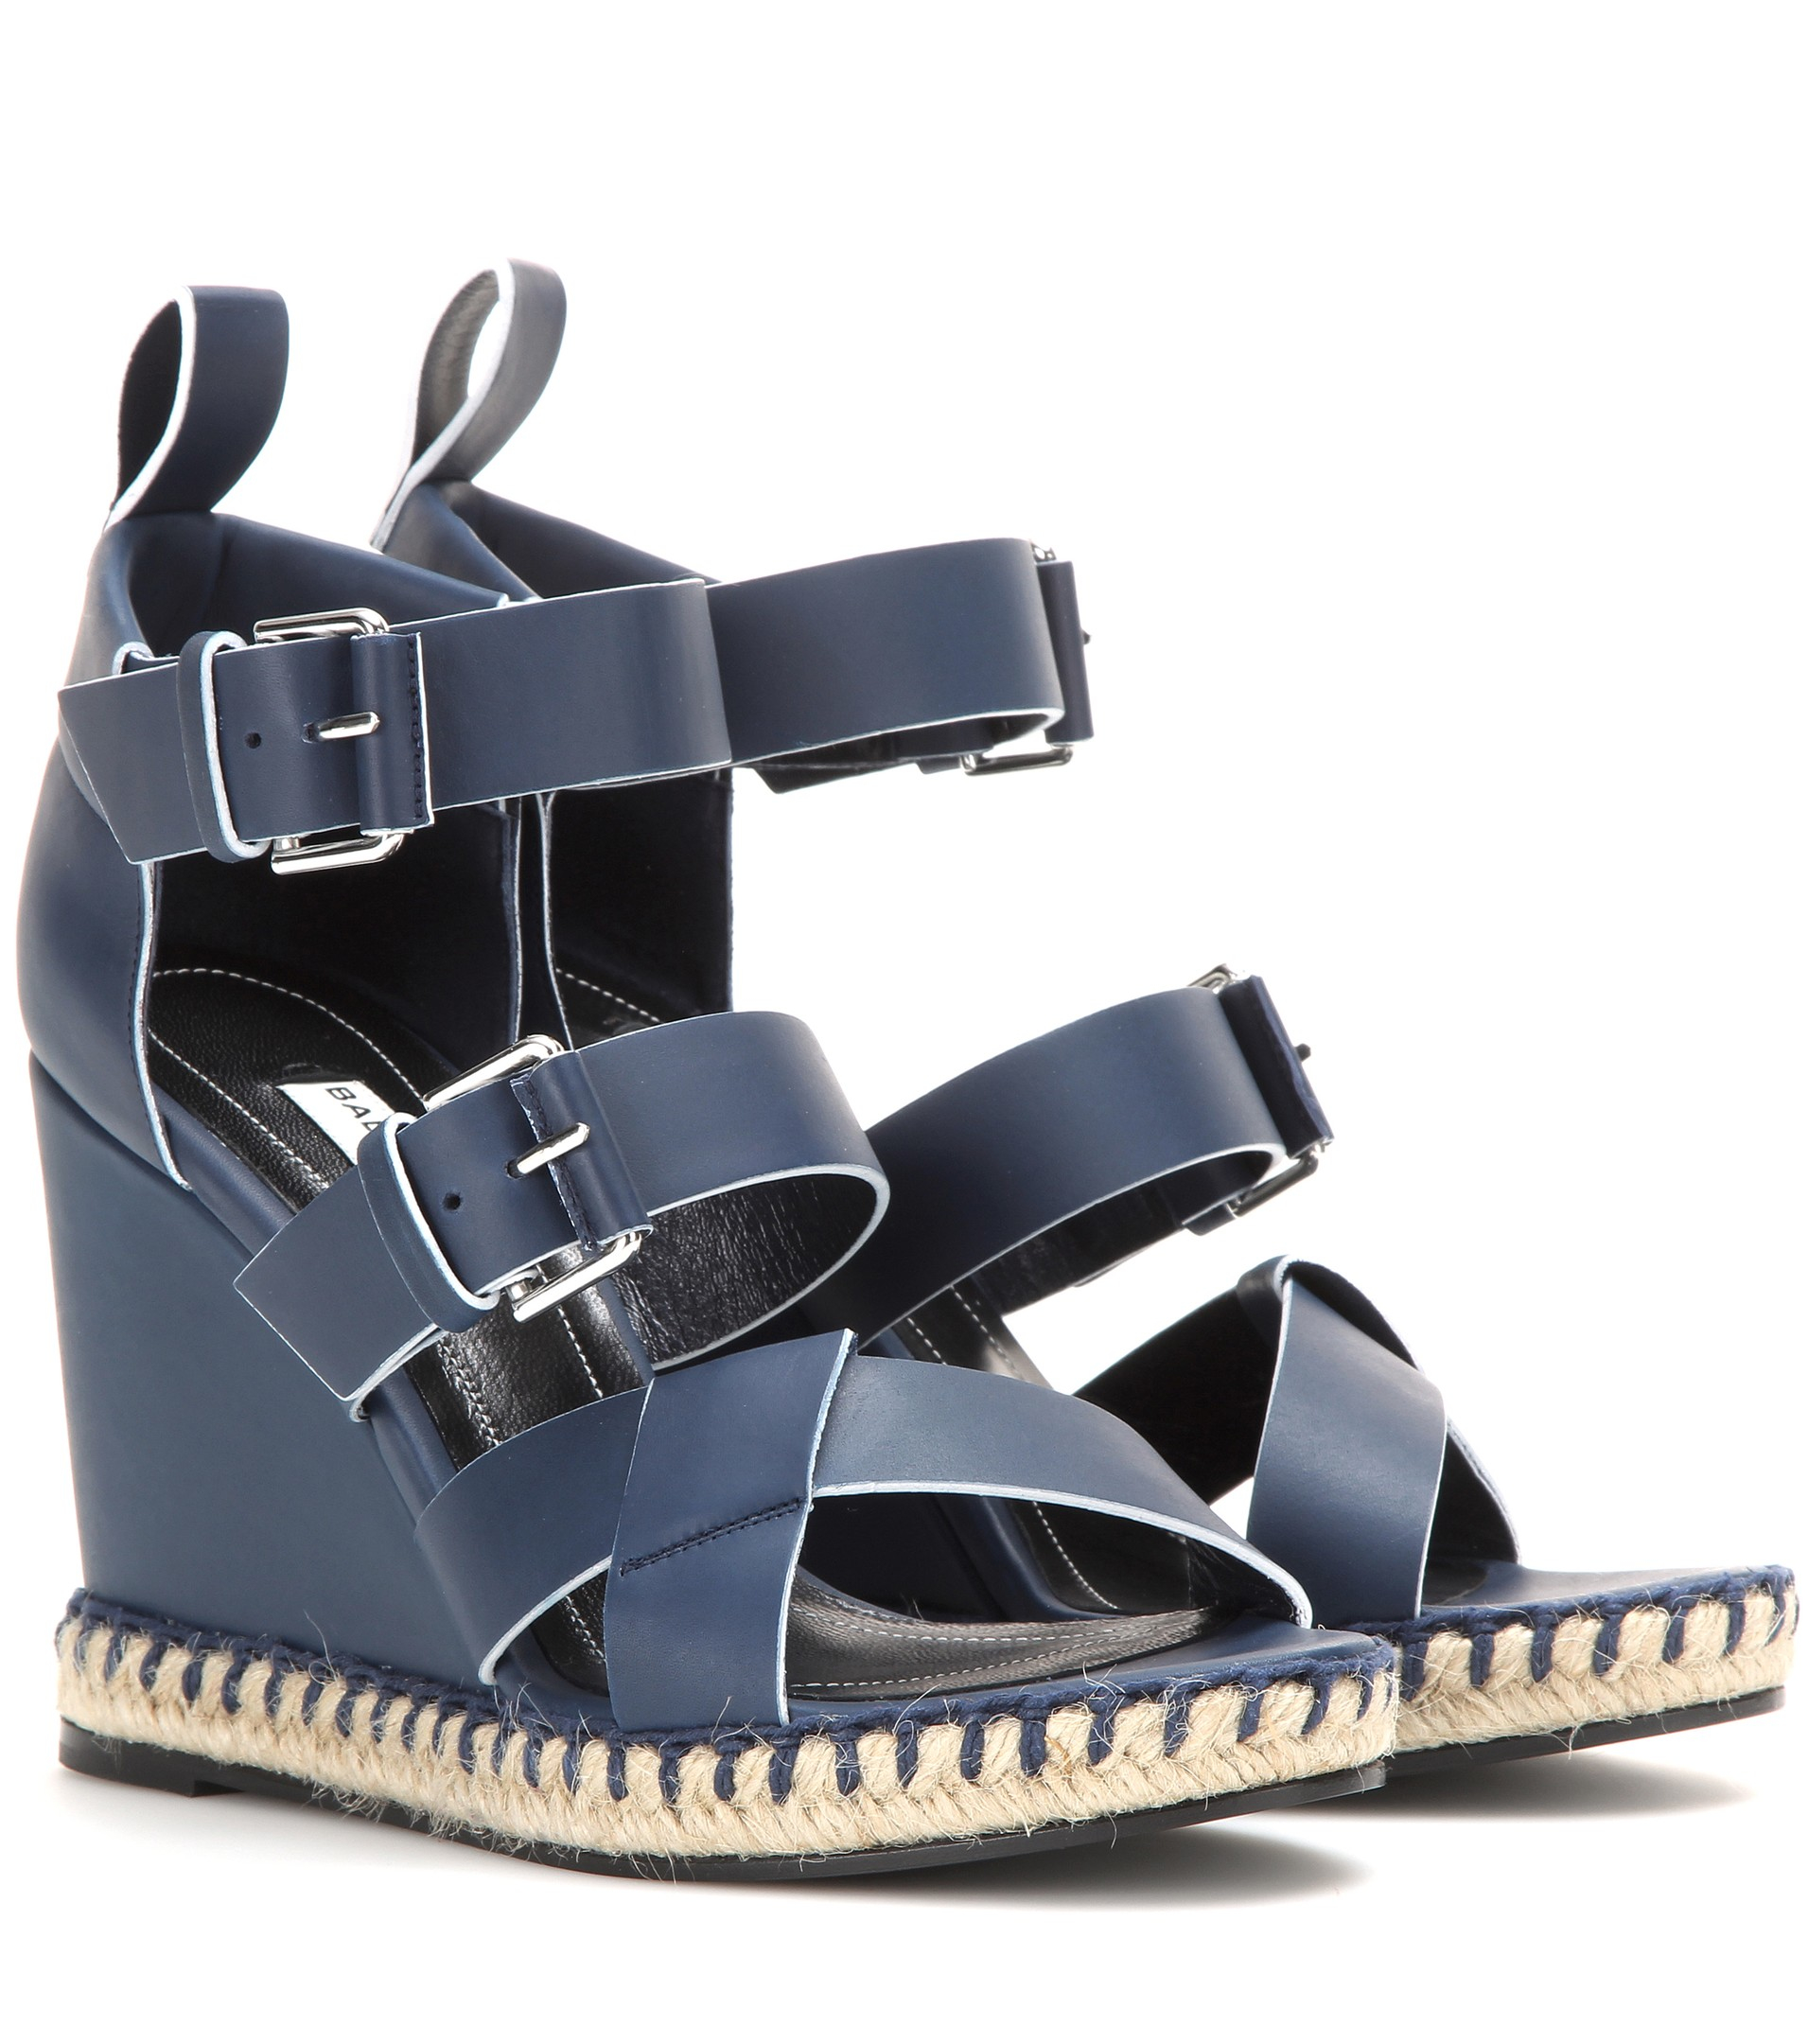 Balenciaga Buckle Accented Leather Sandals with mastercard sale online for sale finishline sale 100% authentic cheap sale pick a best free shipping 100% guaranteed 1xBBI7Hf